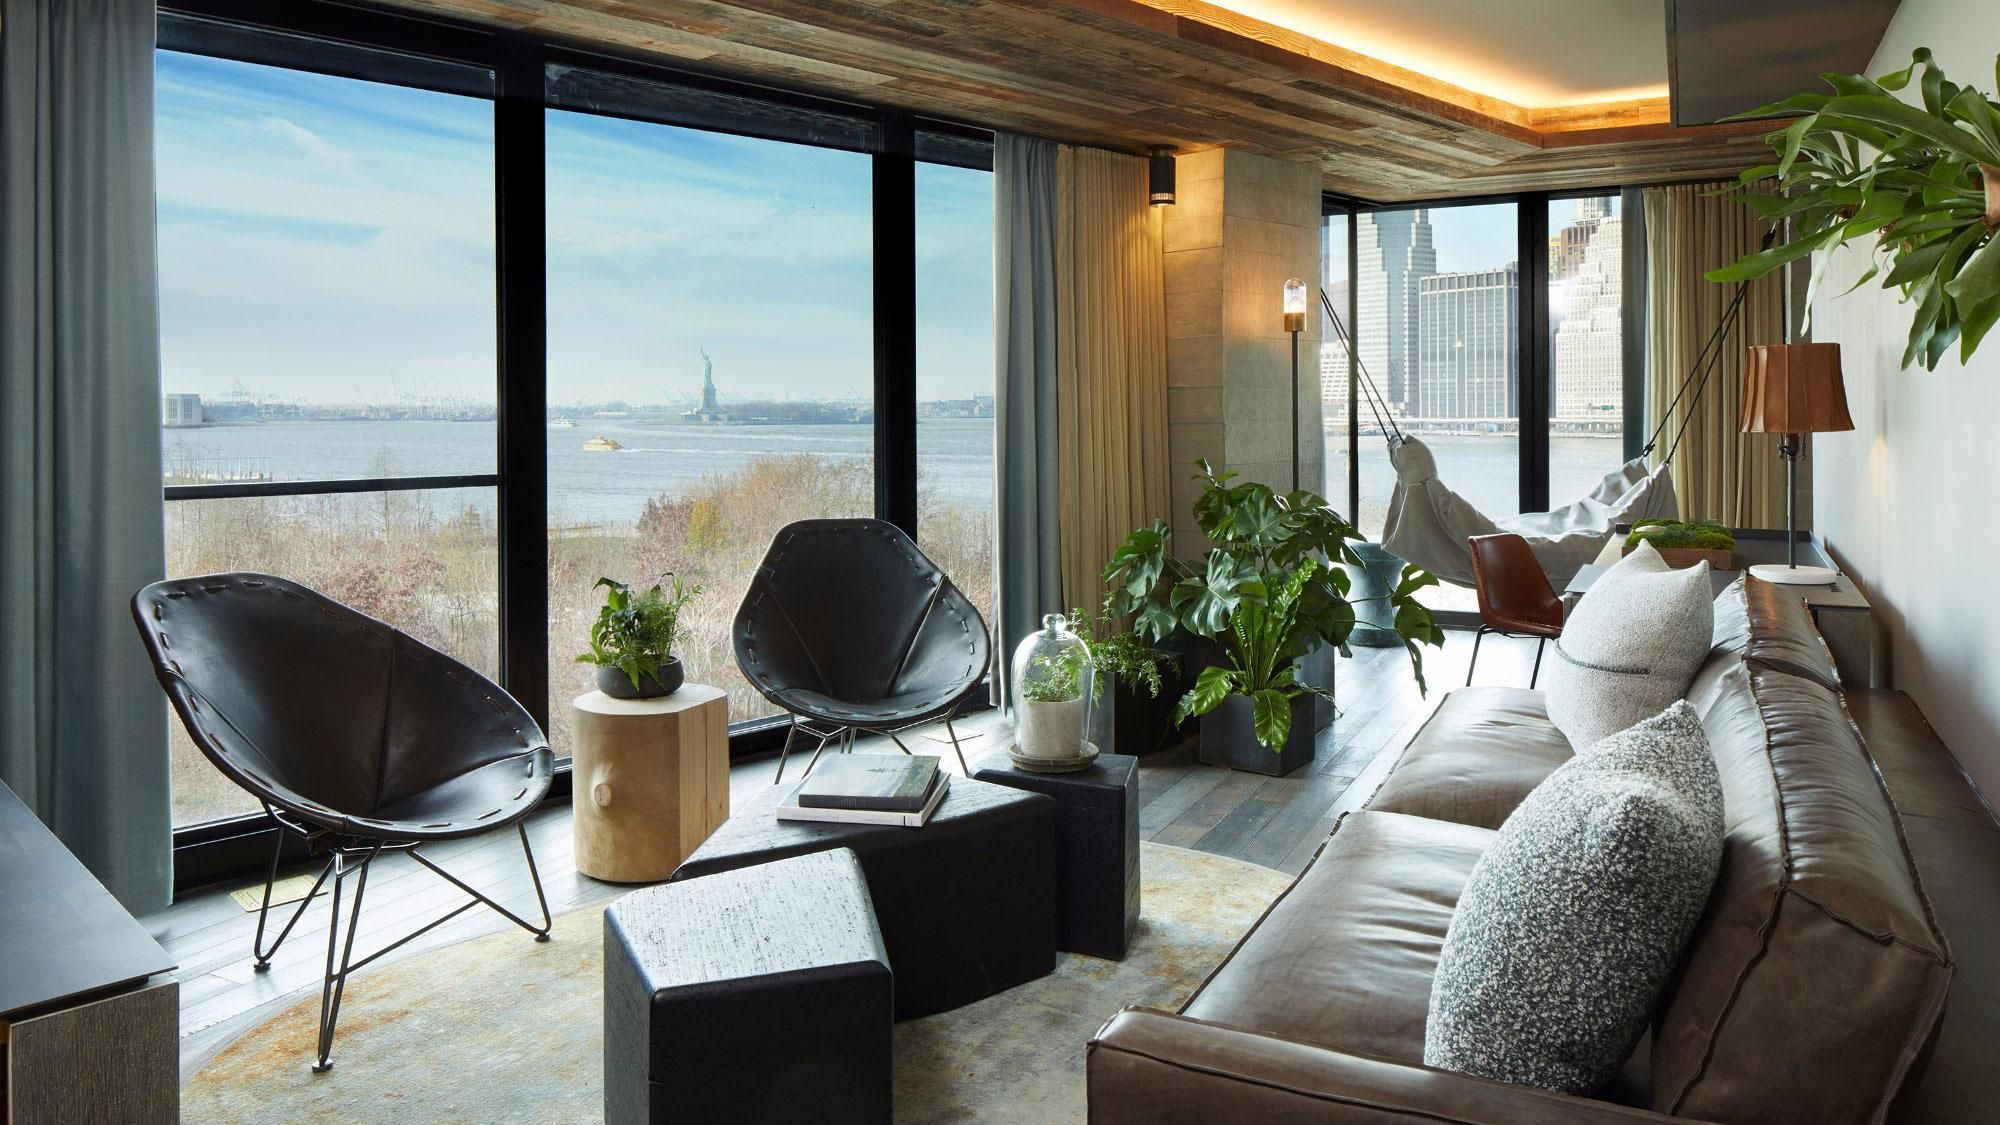 1 Hotel In Brooklyn With A View To The Statue Of Liberty Statueofliberty Roomwithaview Guestroom 1hotel Luxury Hotels Nyc Brooklyn Hotels Brooklyn Bridge